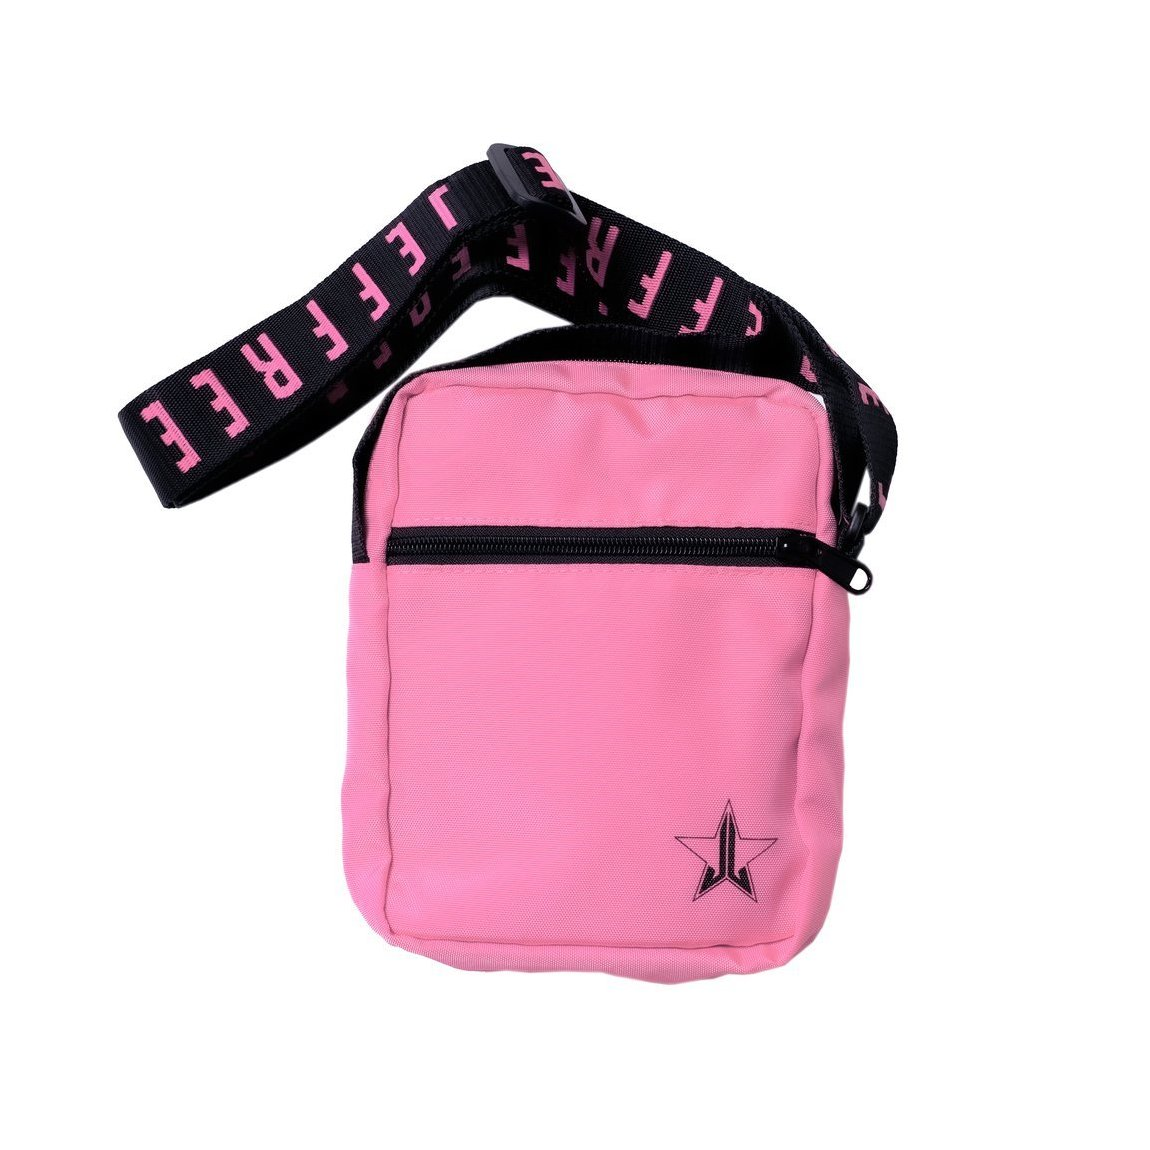 Jeffree Star Cosmetics Side Bag Baby Pink alternative view 1 - product swatch.